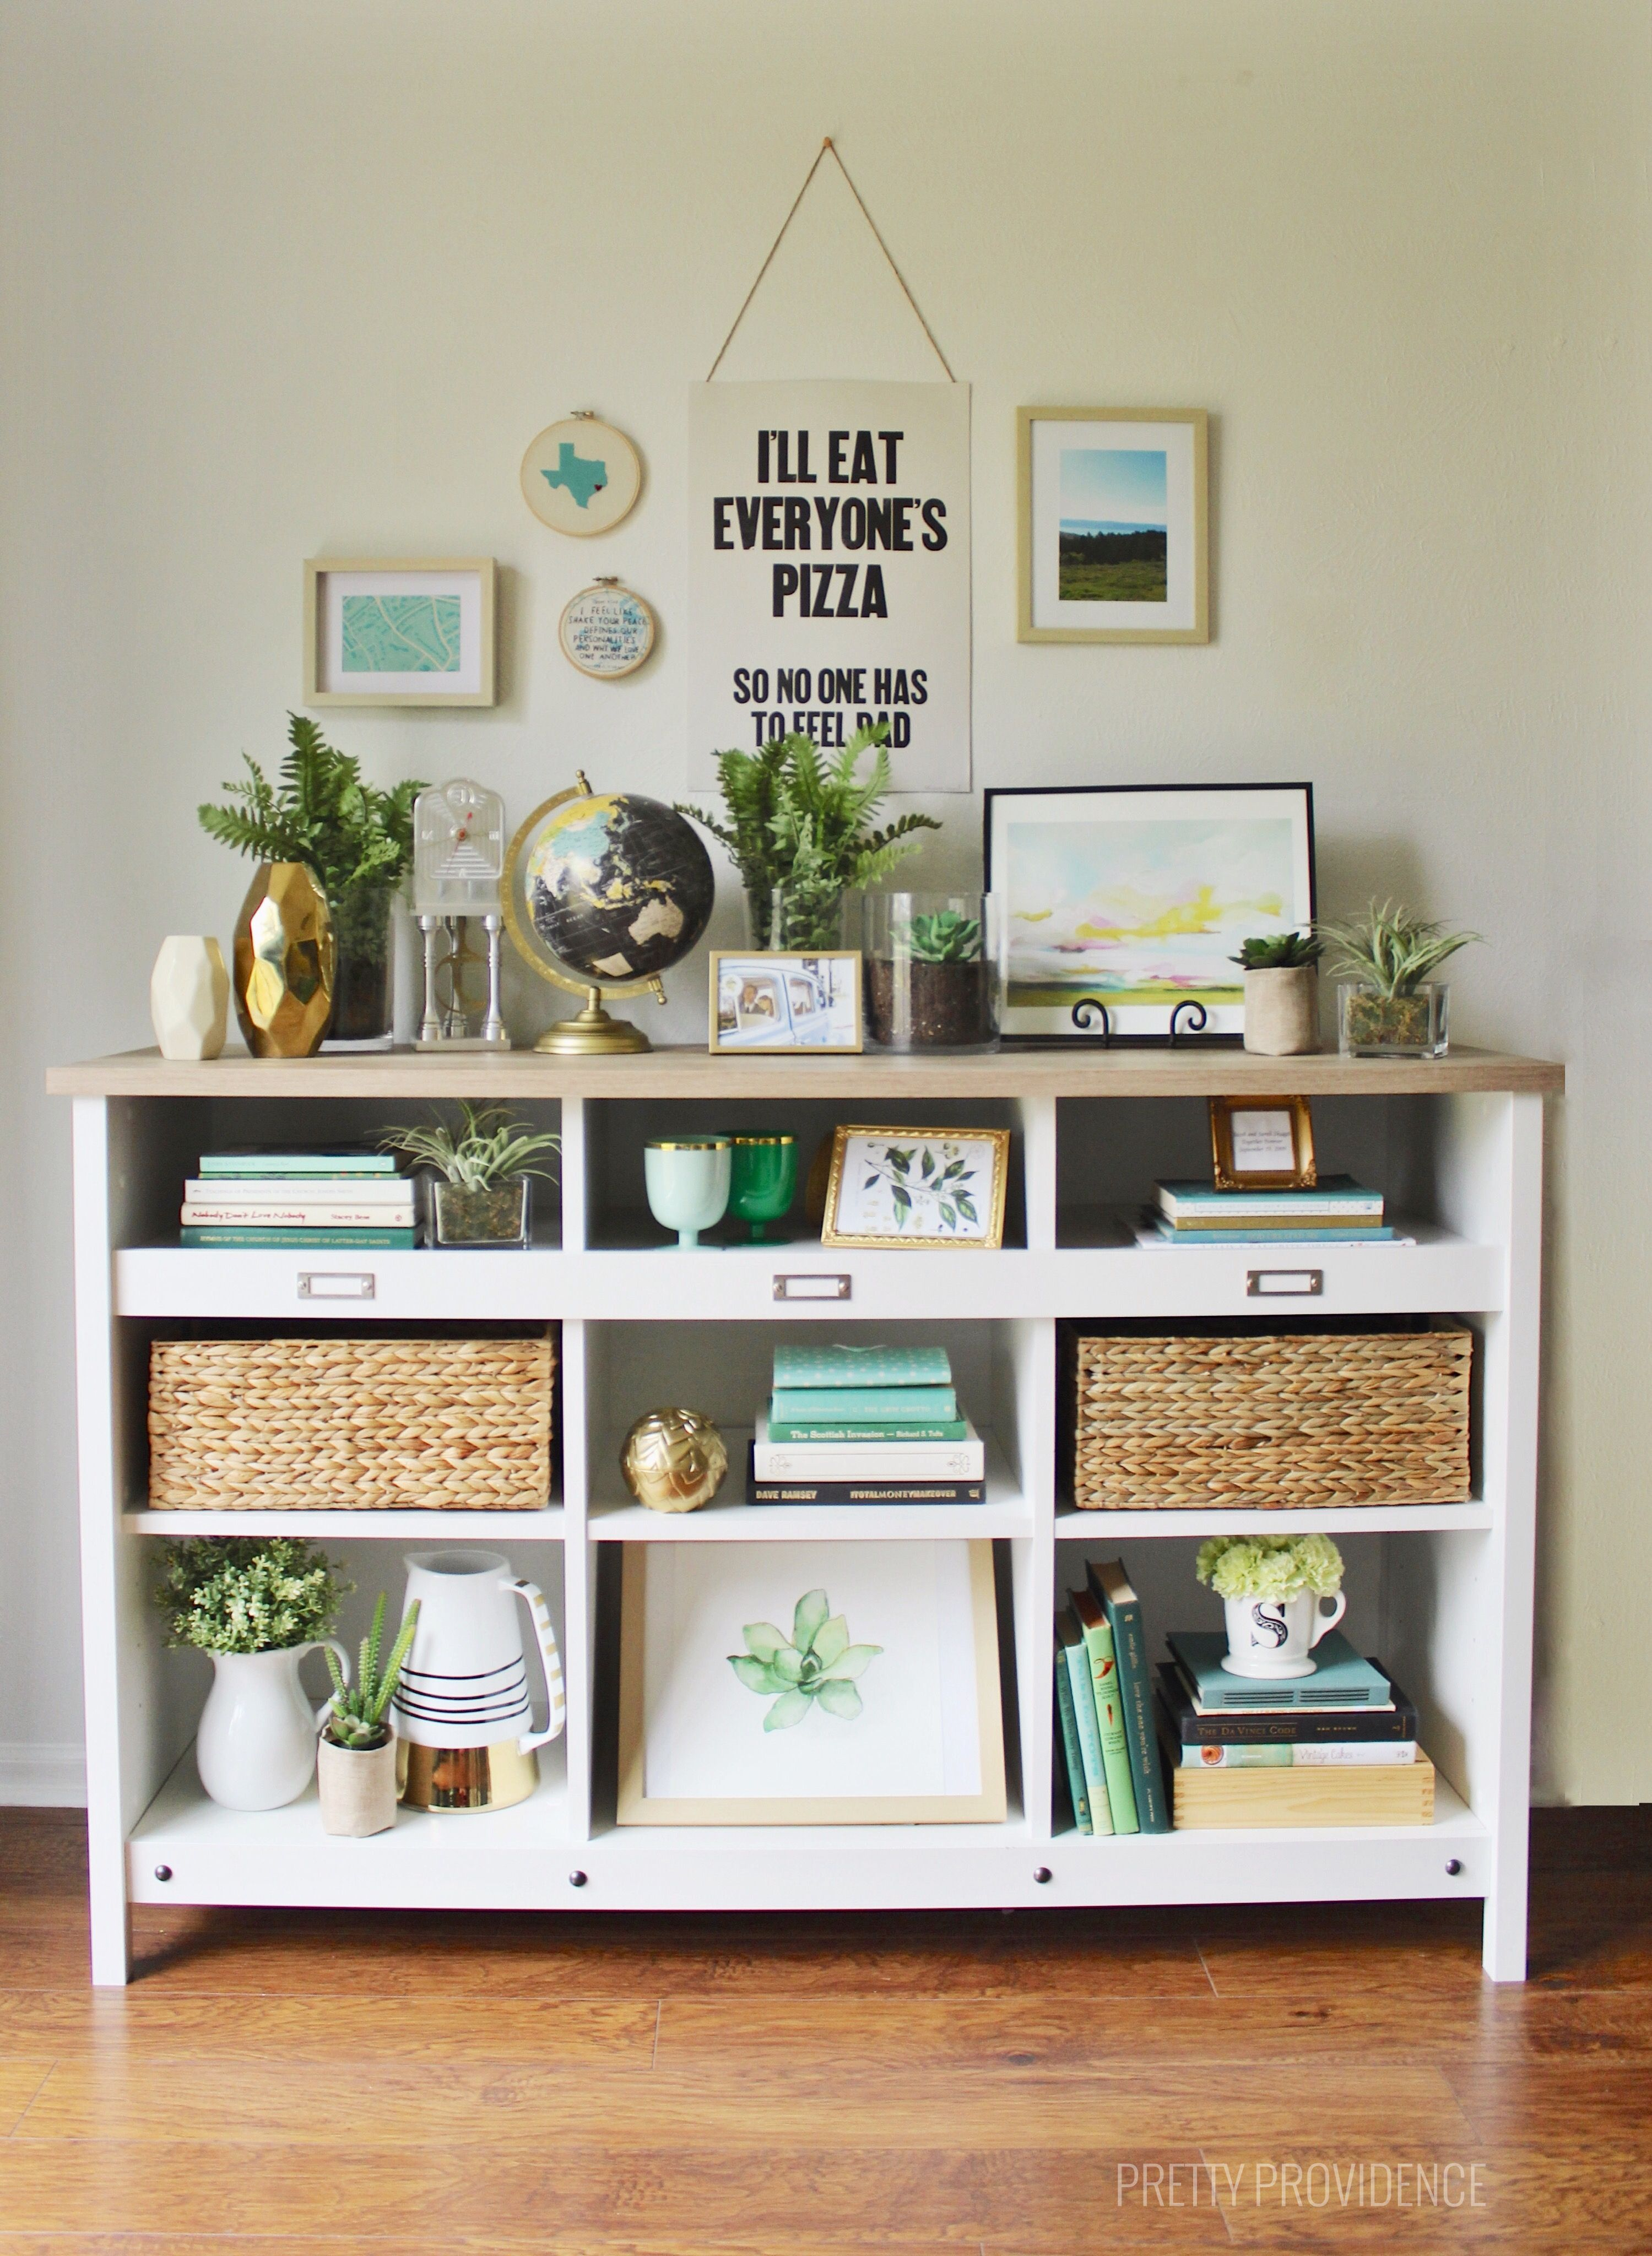 How to style shelves on a budget the nest home decor - How to decorate my room without spending money ...